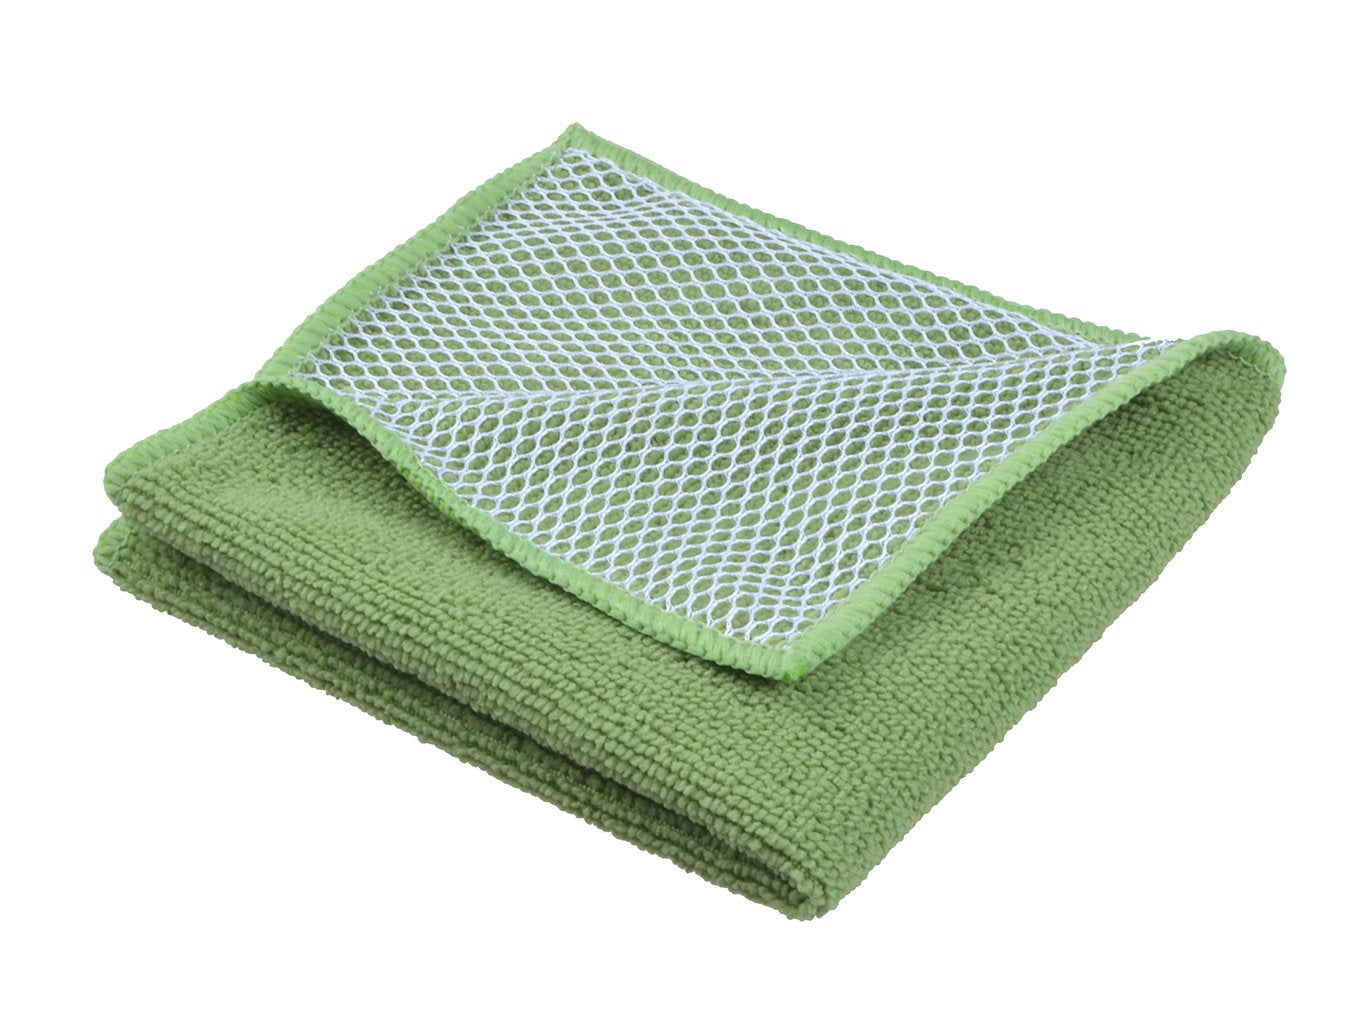 "LLESS Microfiber Dish Cloth for Washing Dishes Dish Rags Best Kitchen Cloths Cleaning Cloths With Poly Scour Side 5 color assorted 12""x12"" 10 Pack (Pinkx2+bluex2+whitex2+yellowx2+greenx2)"